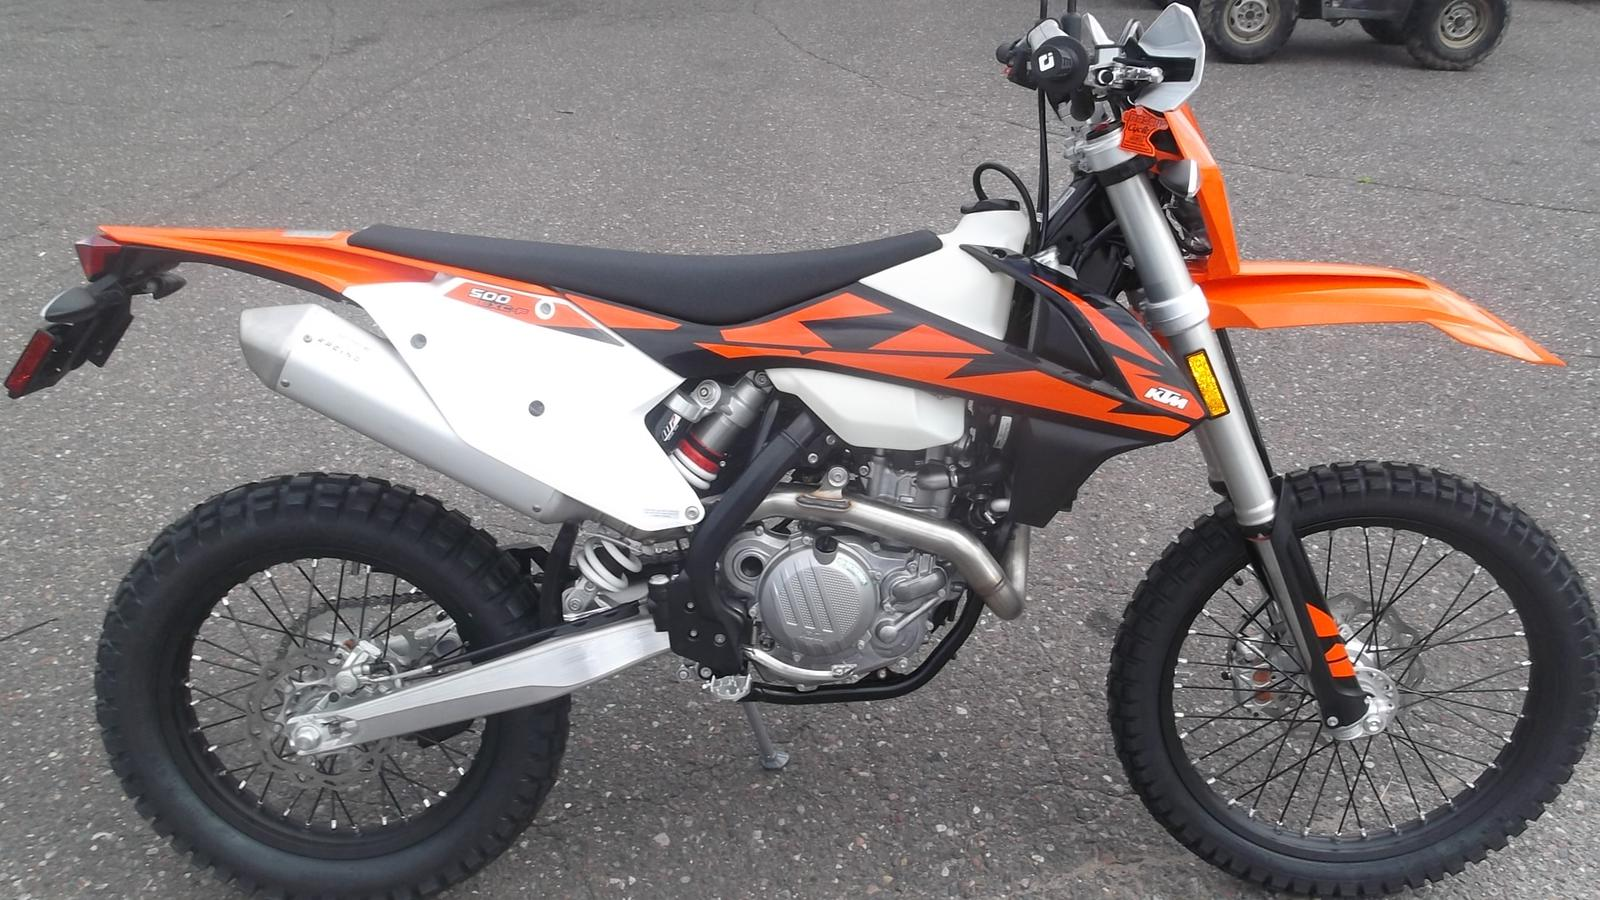 2018 KTM 500 EXC-F for sale in Cambridge, MN   Larson's Cycle Inc ...